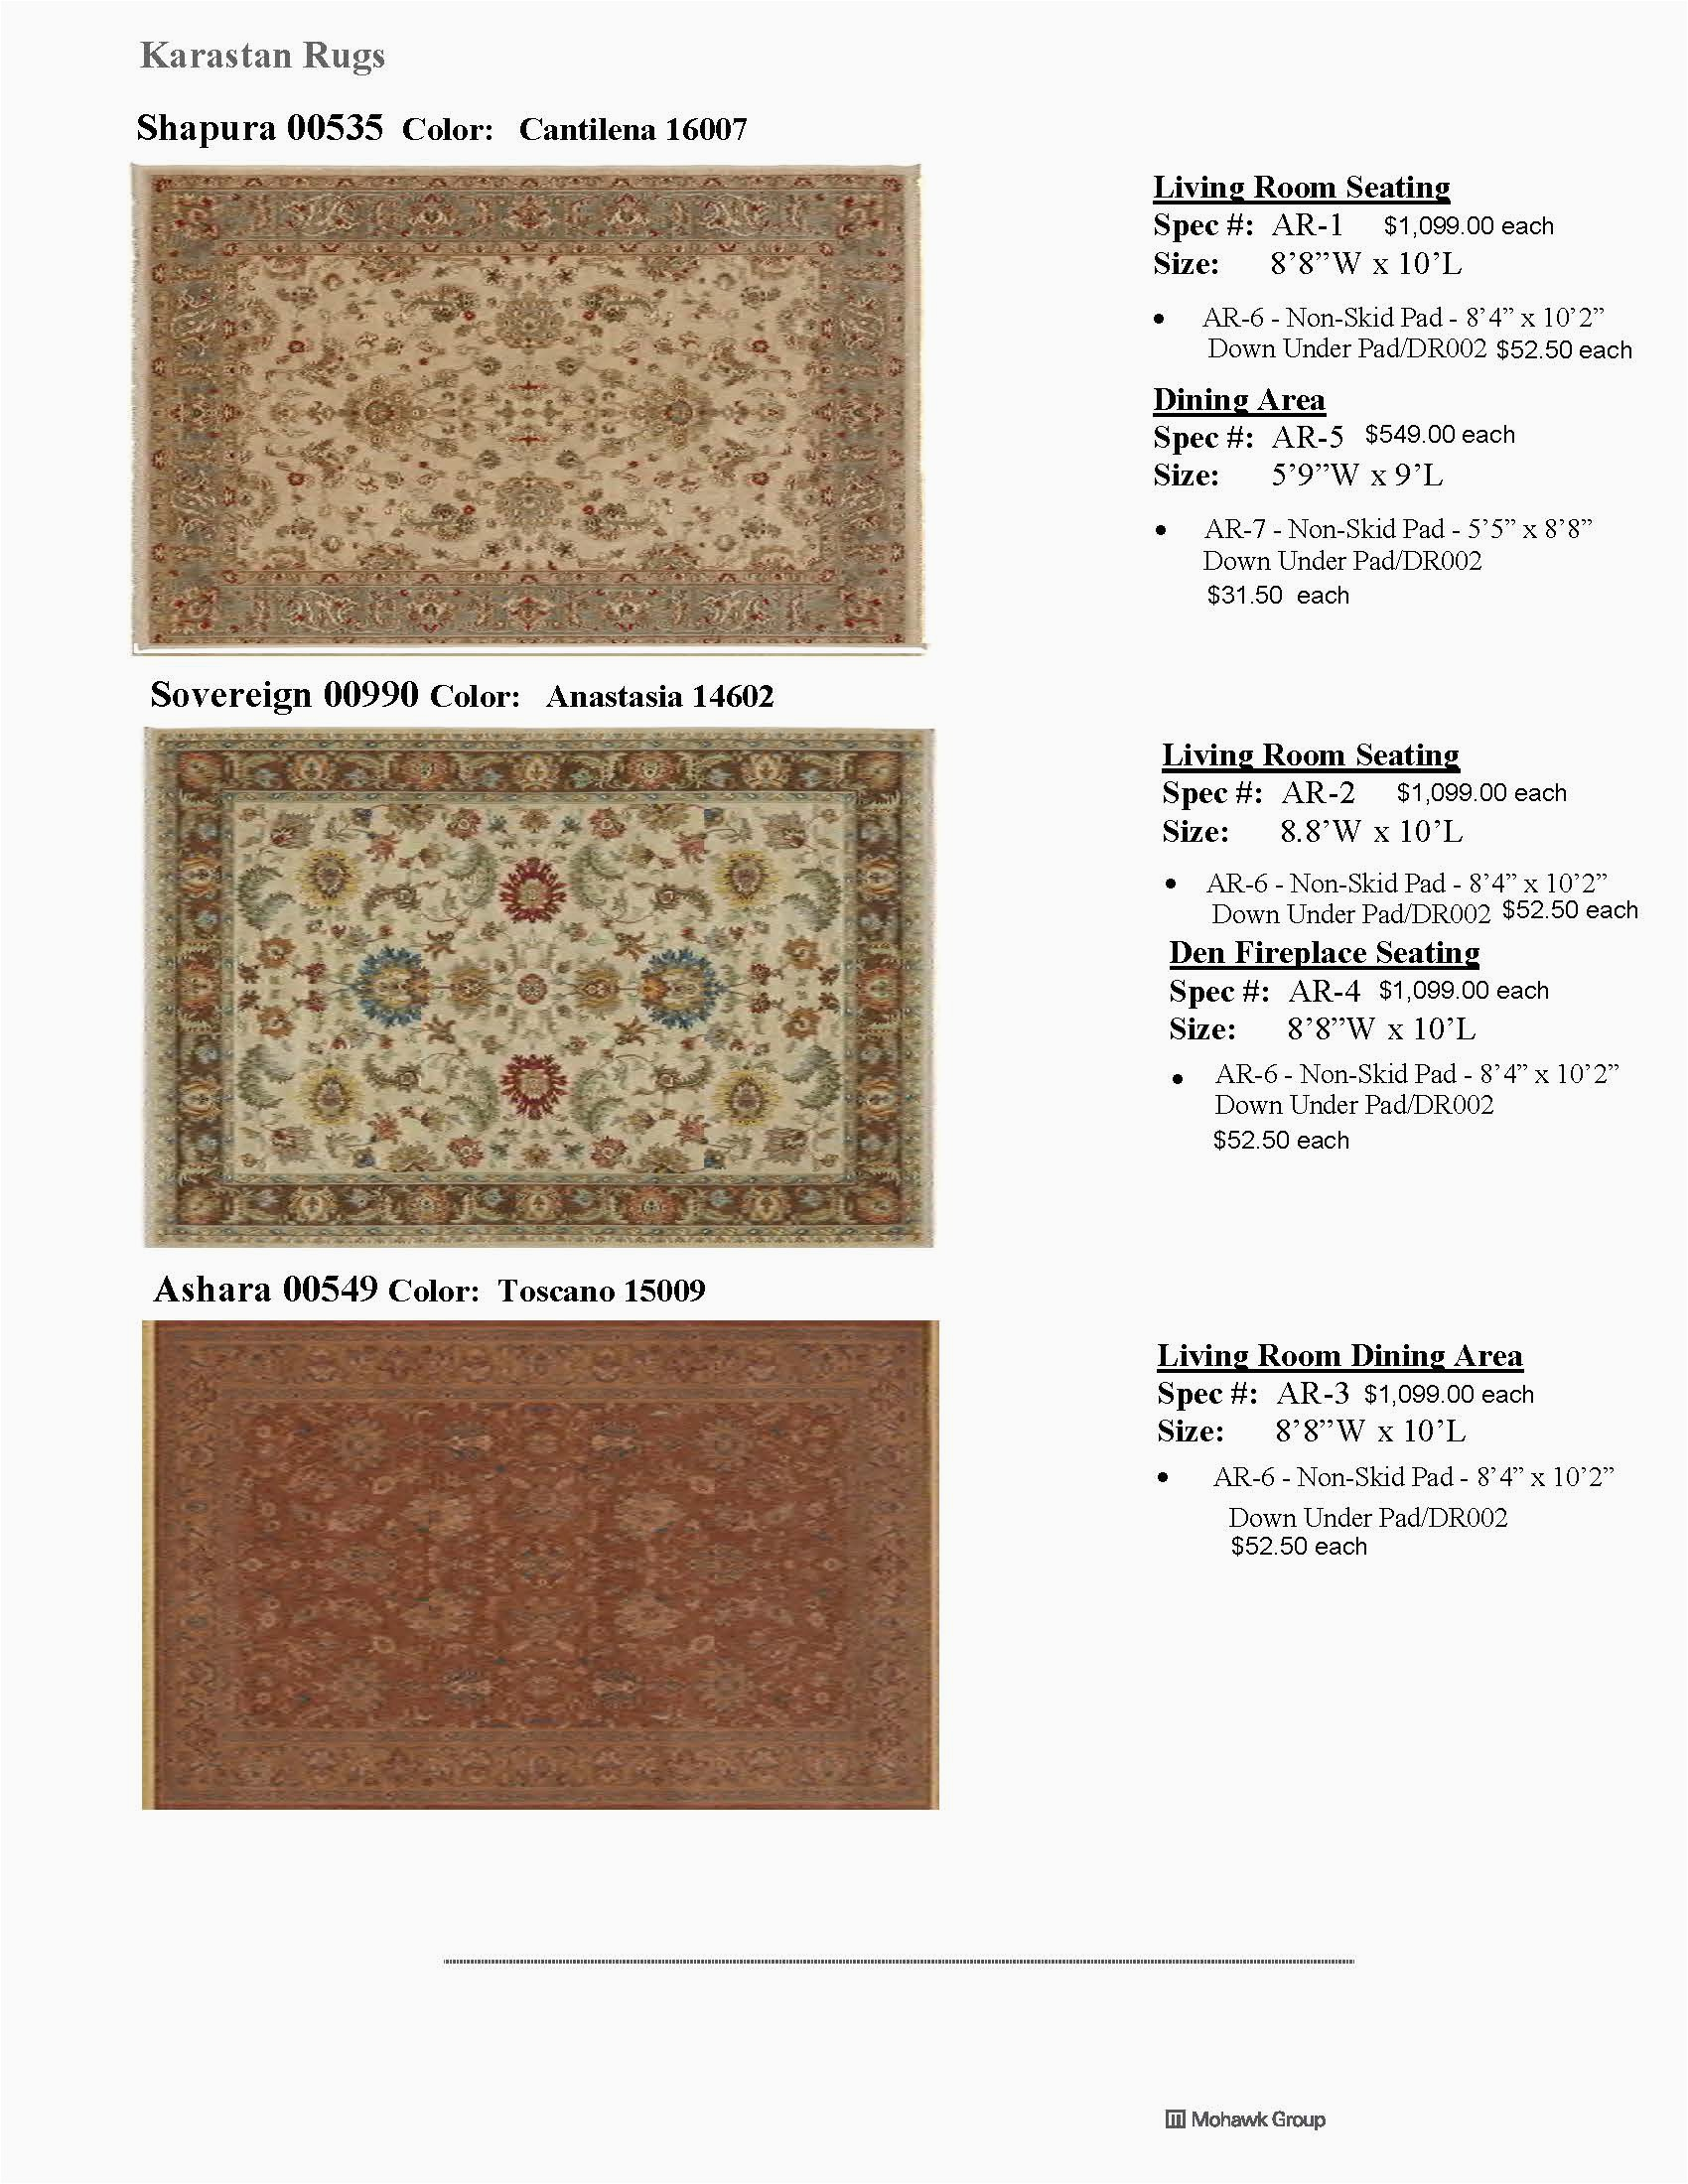 Country Inn Suites Gen 4 July 12 2017 rev layout 9 18 17 1 1 AREA RUGS